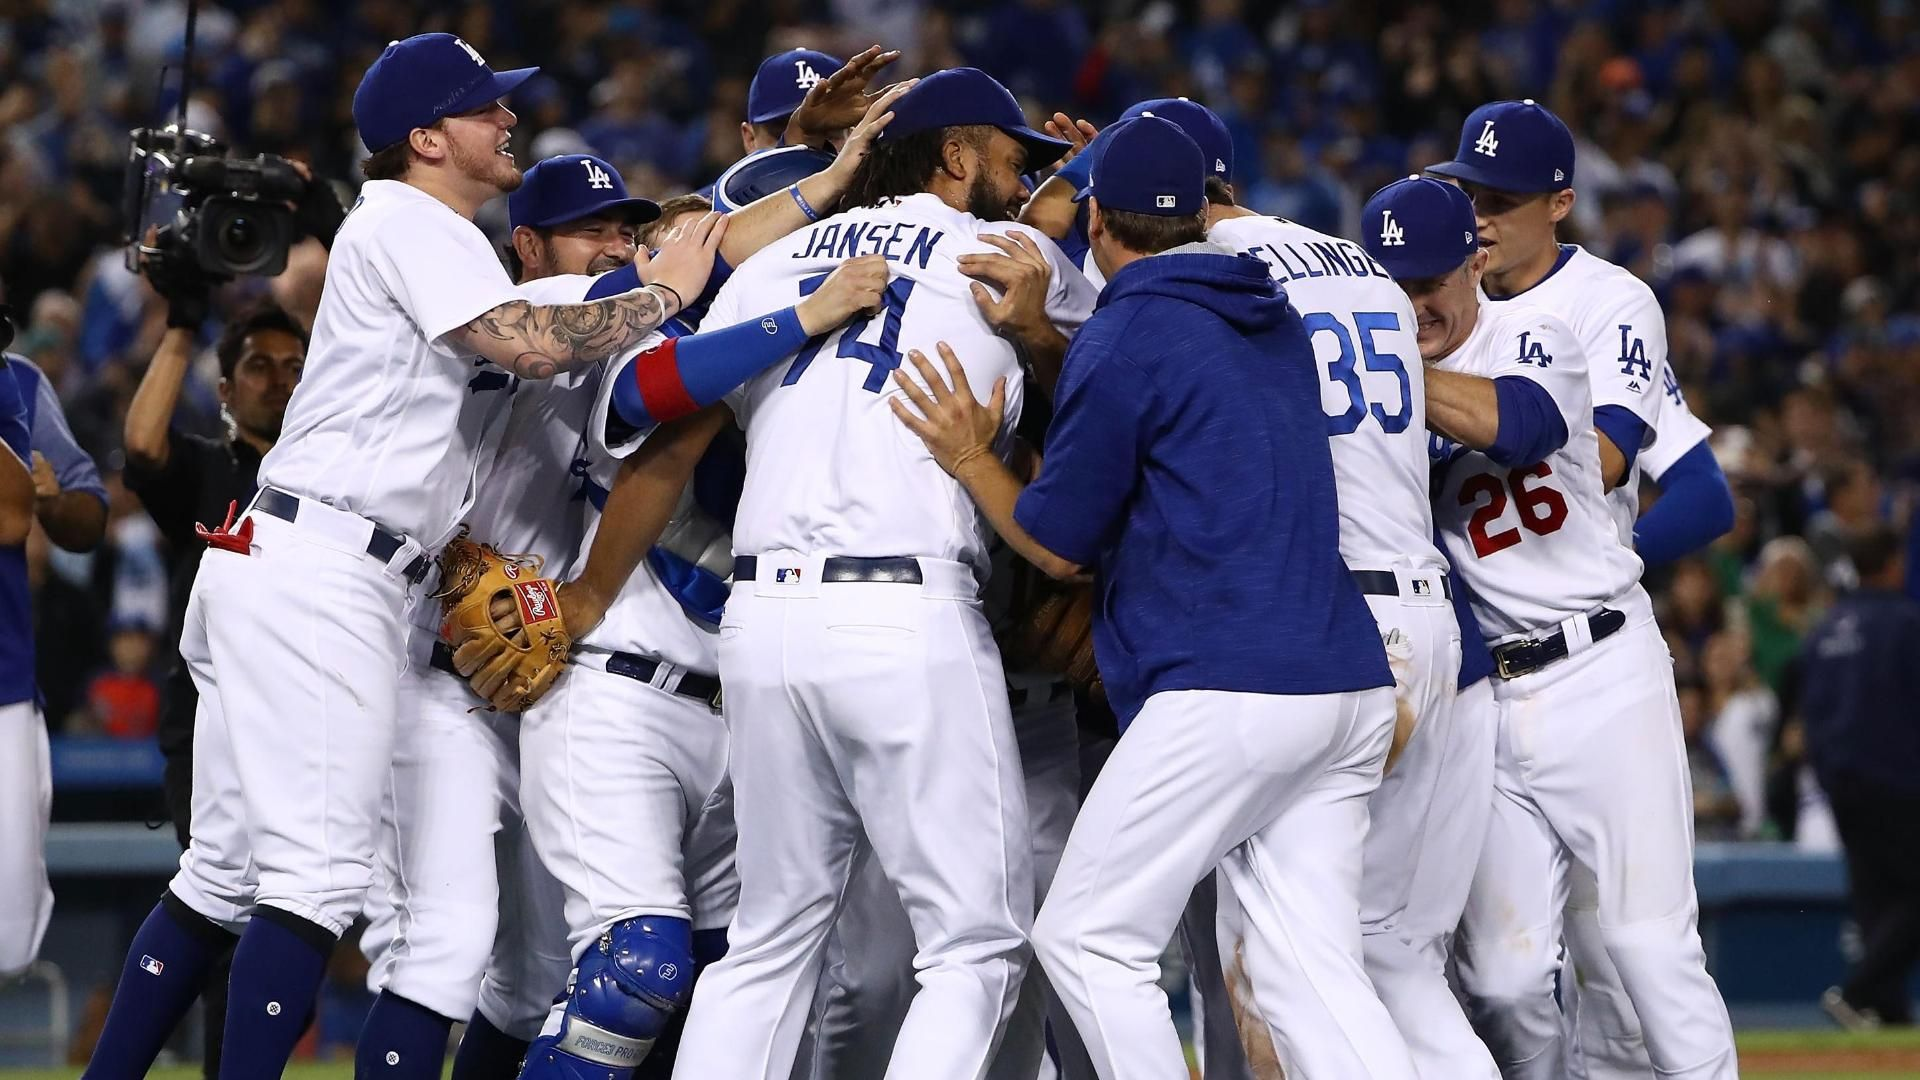 Dodgers clinch division title